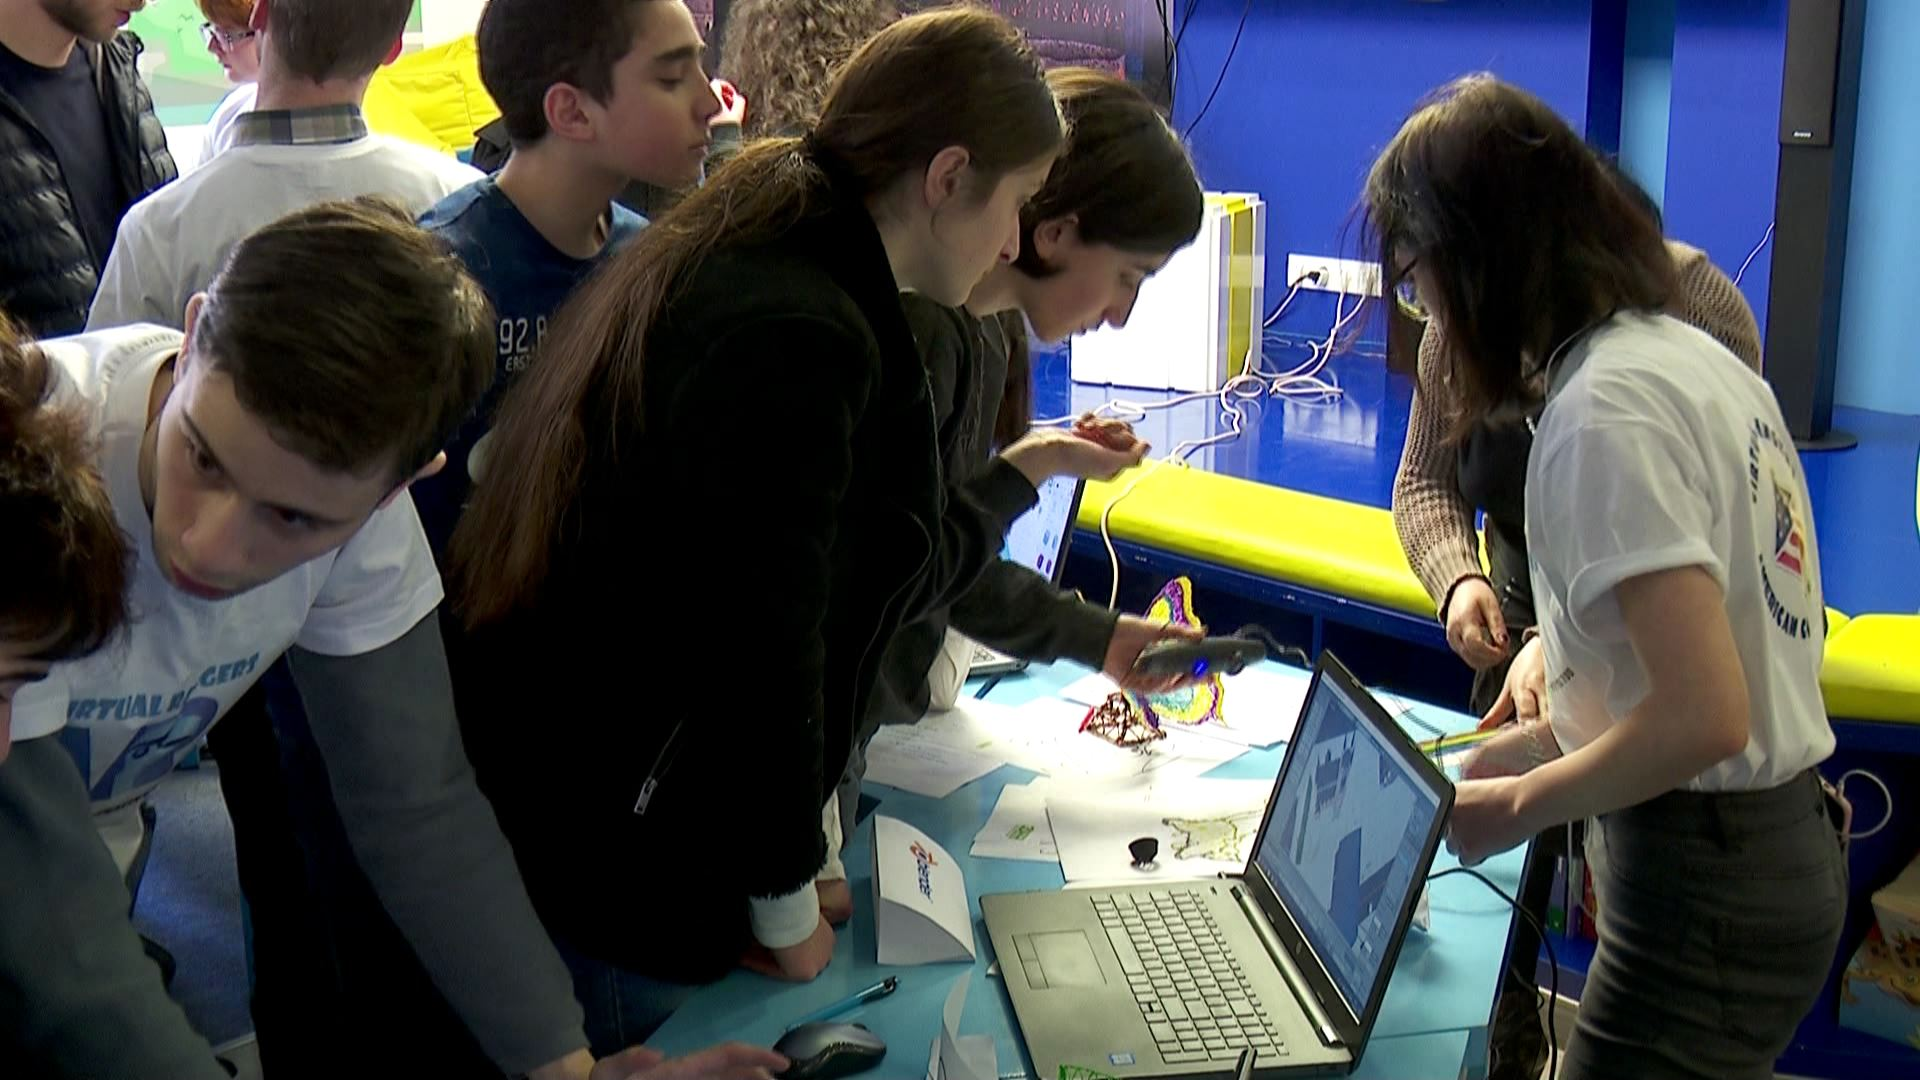 The exhibition of technological workshops was held in the American corner